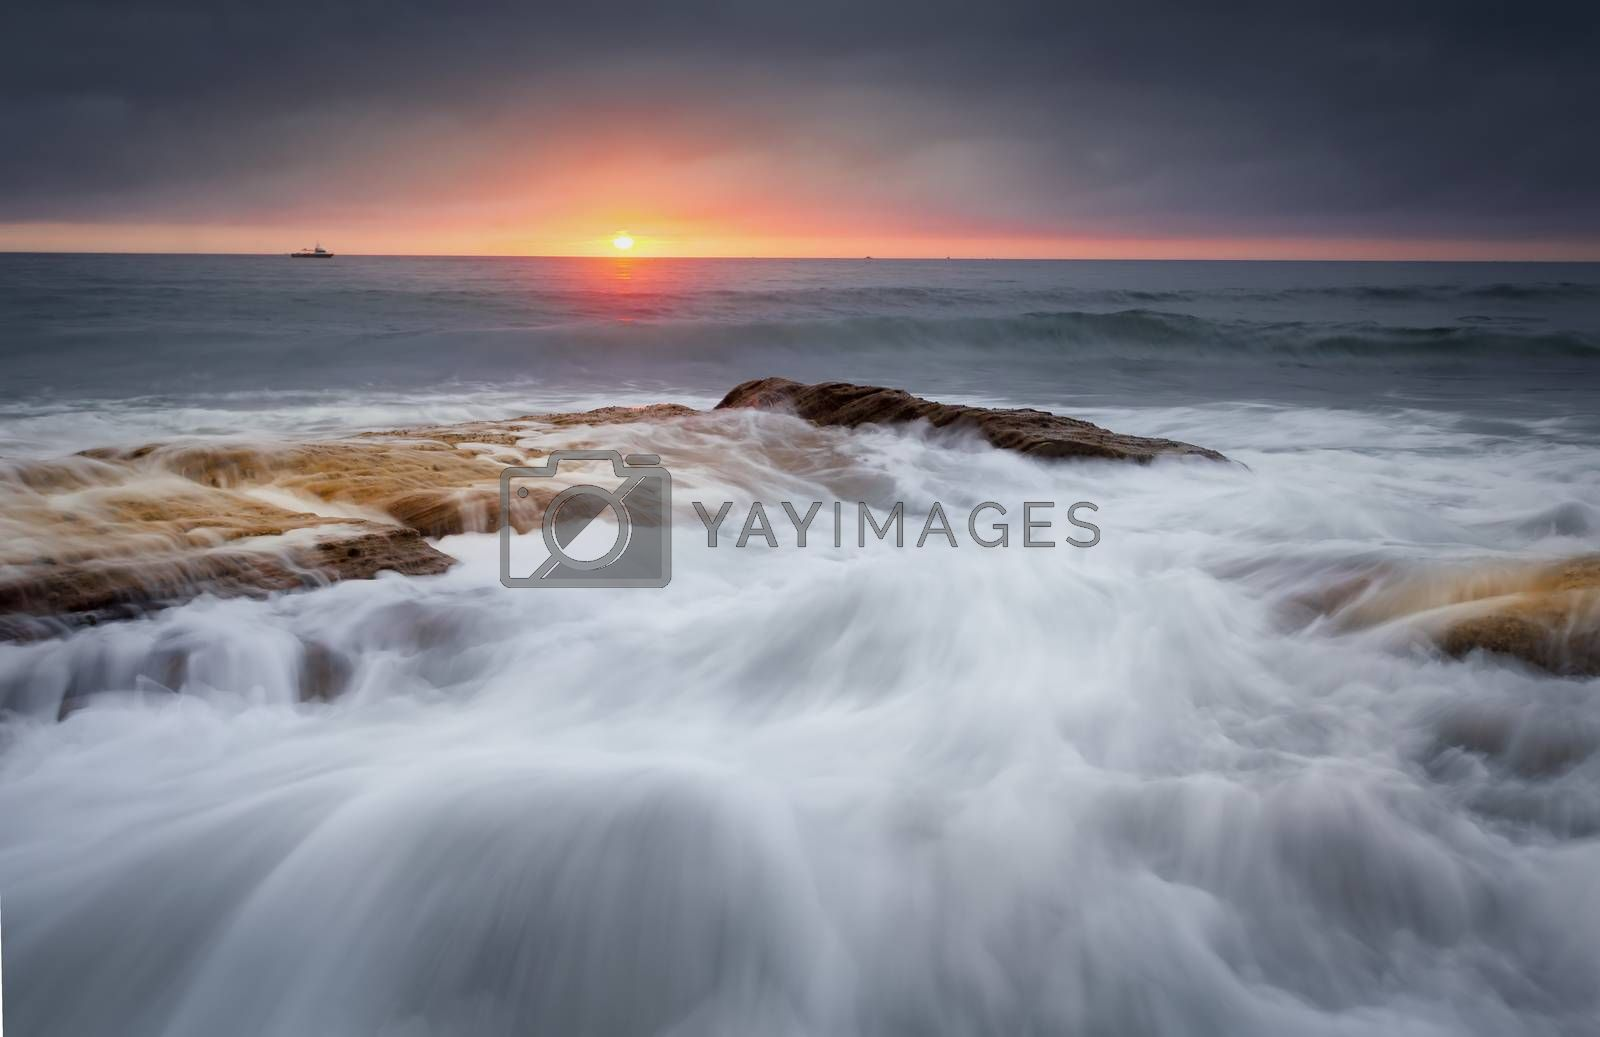 Waves crash over rocks and flow in a myriad of patterns that resemble an artists brush strokes. A break in the storm clouds allowed  a brief viewing of the sun as it rose over the horizon.